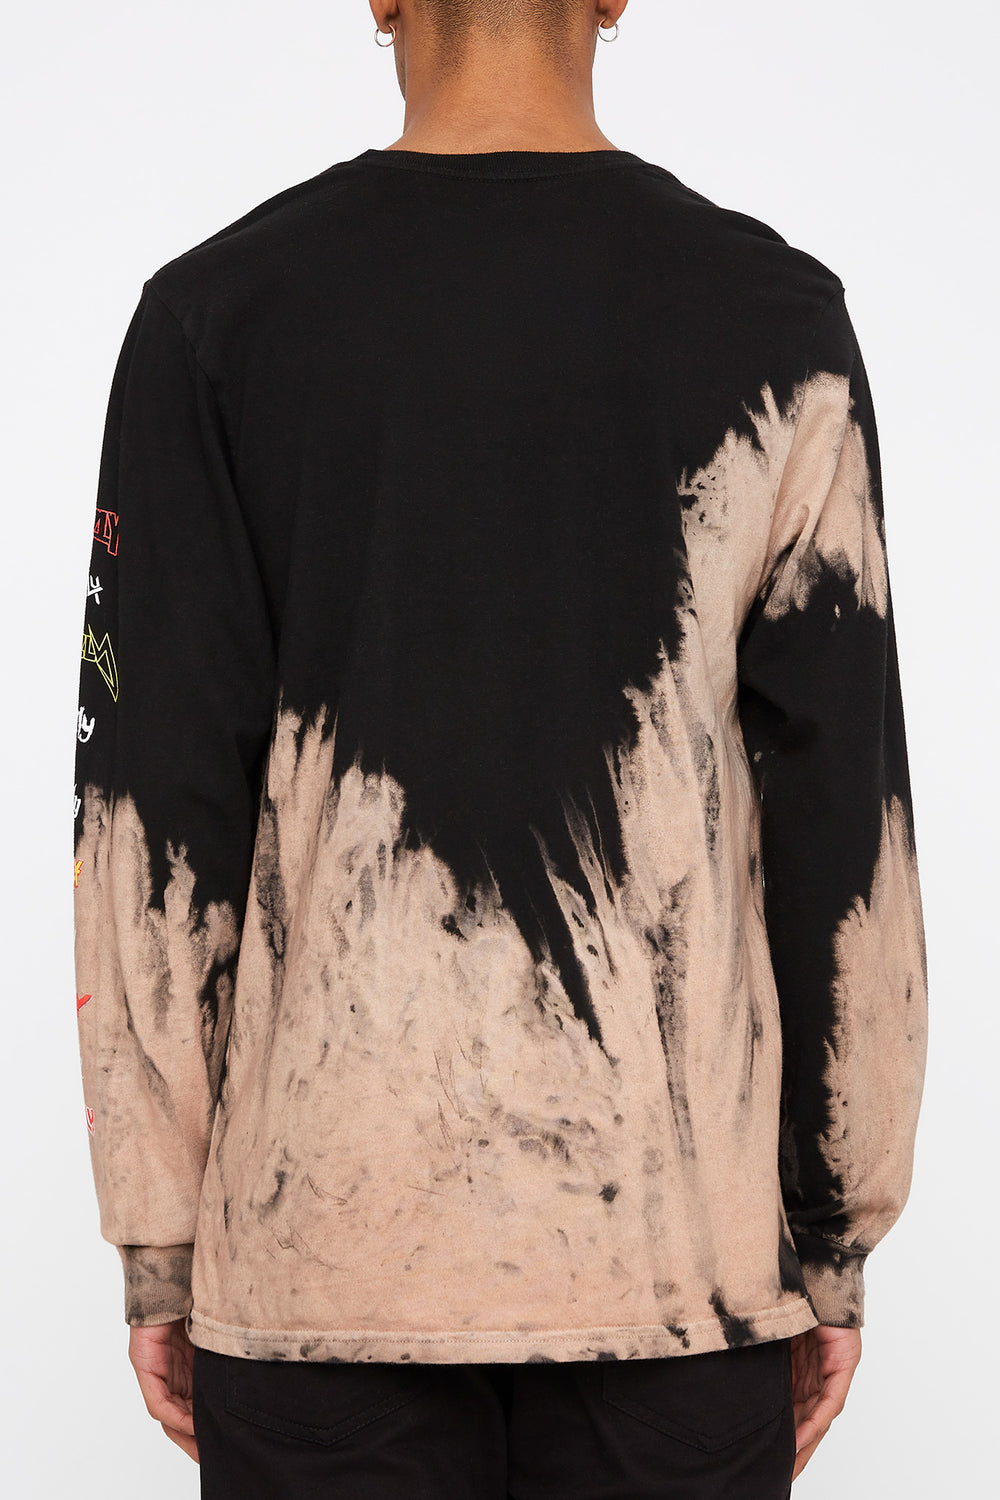 Grizzly Mens Tie-Dye Long Sleeve Shirt Black